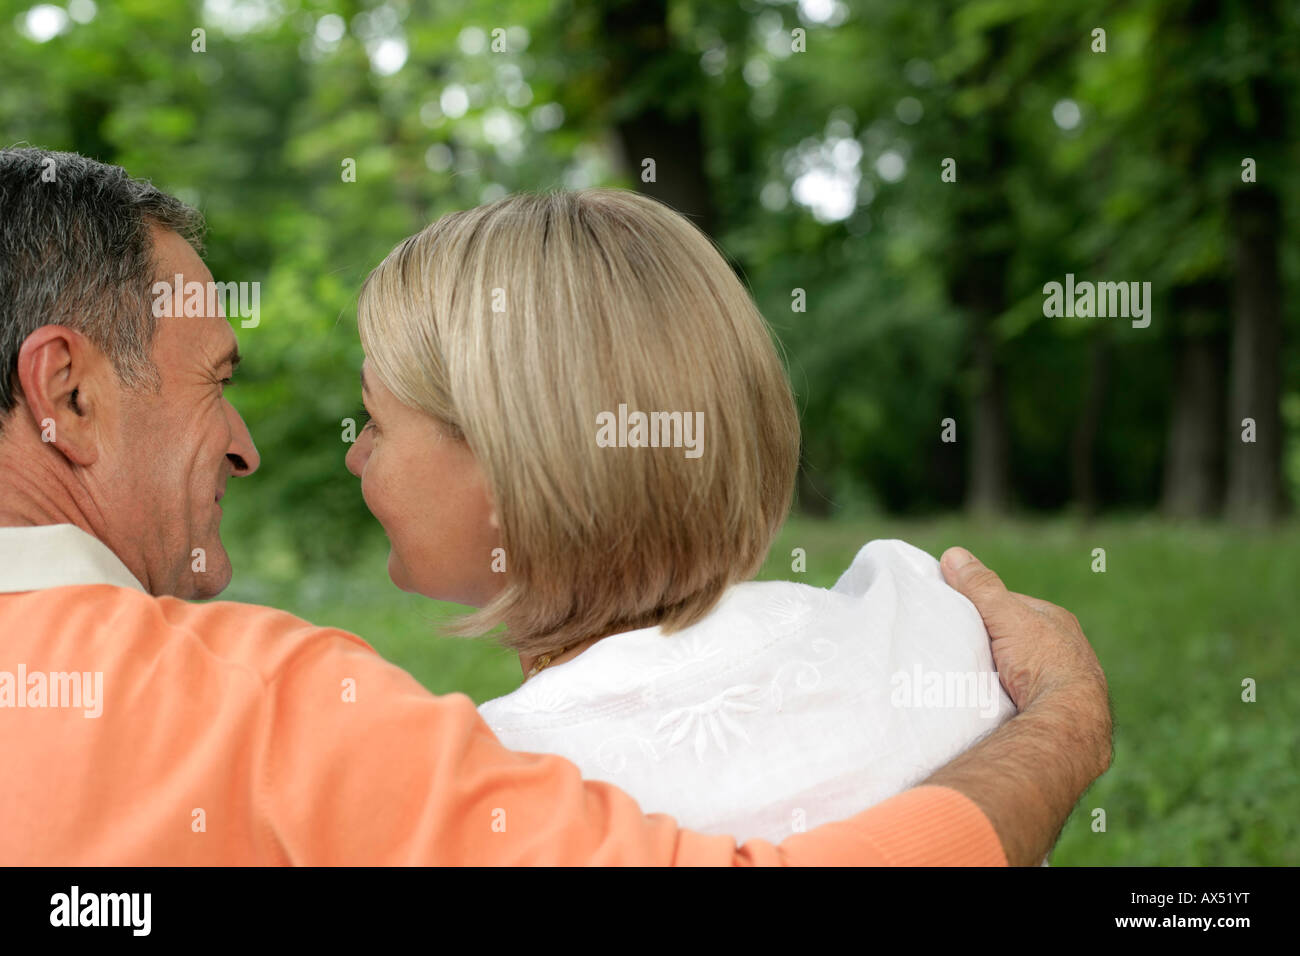 Mature couple embracing each other, looking into each other's eyes - Stock Image